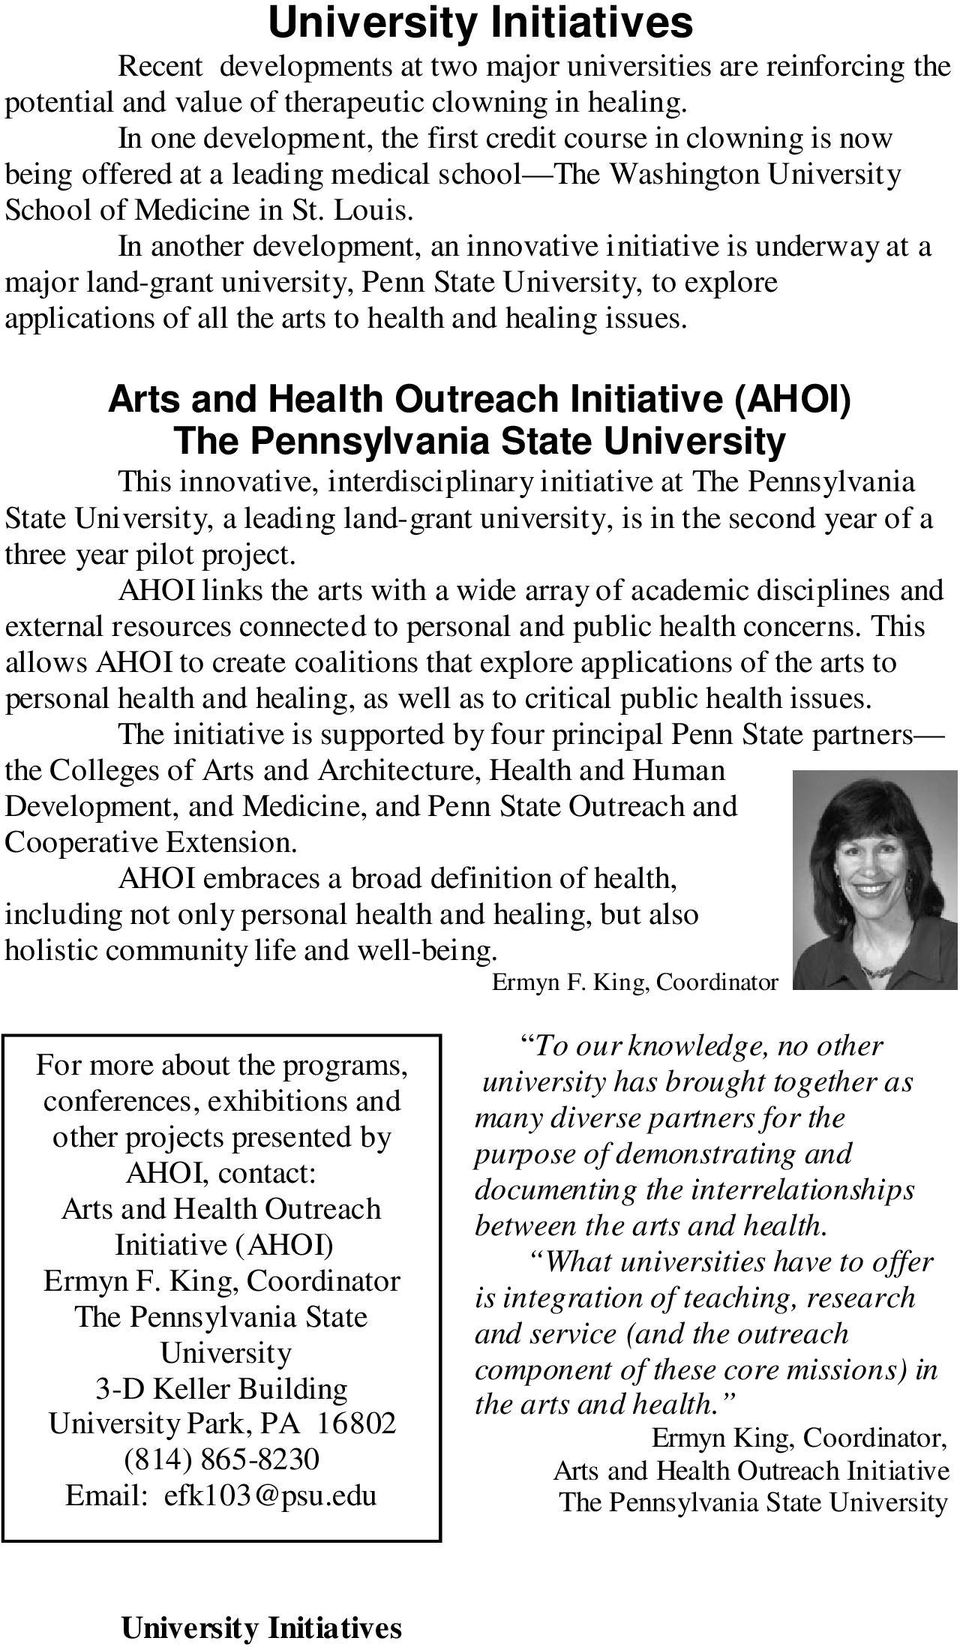 In another development, an innovative initiative is underway at a major land-grant university, Penn State University, to explore applications of all the arts to health and healing issues.